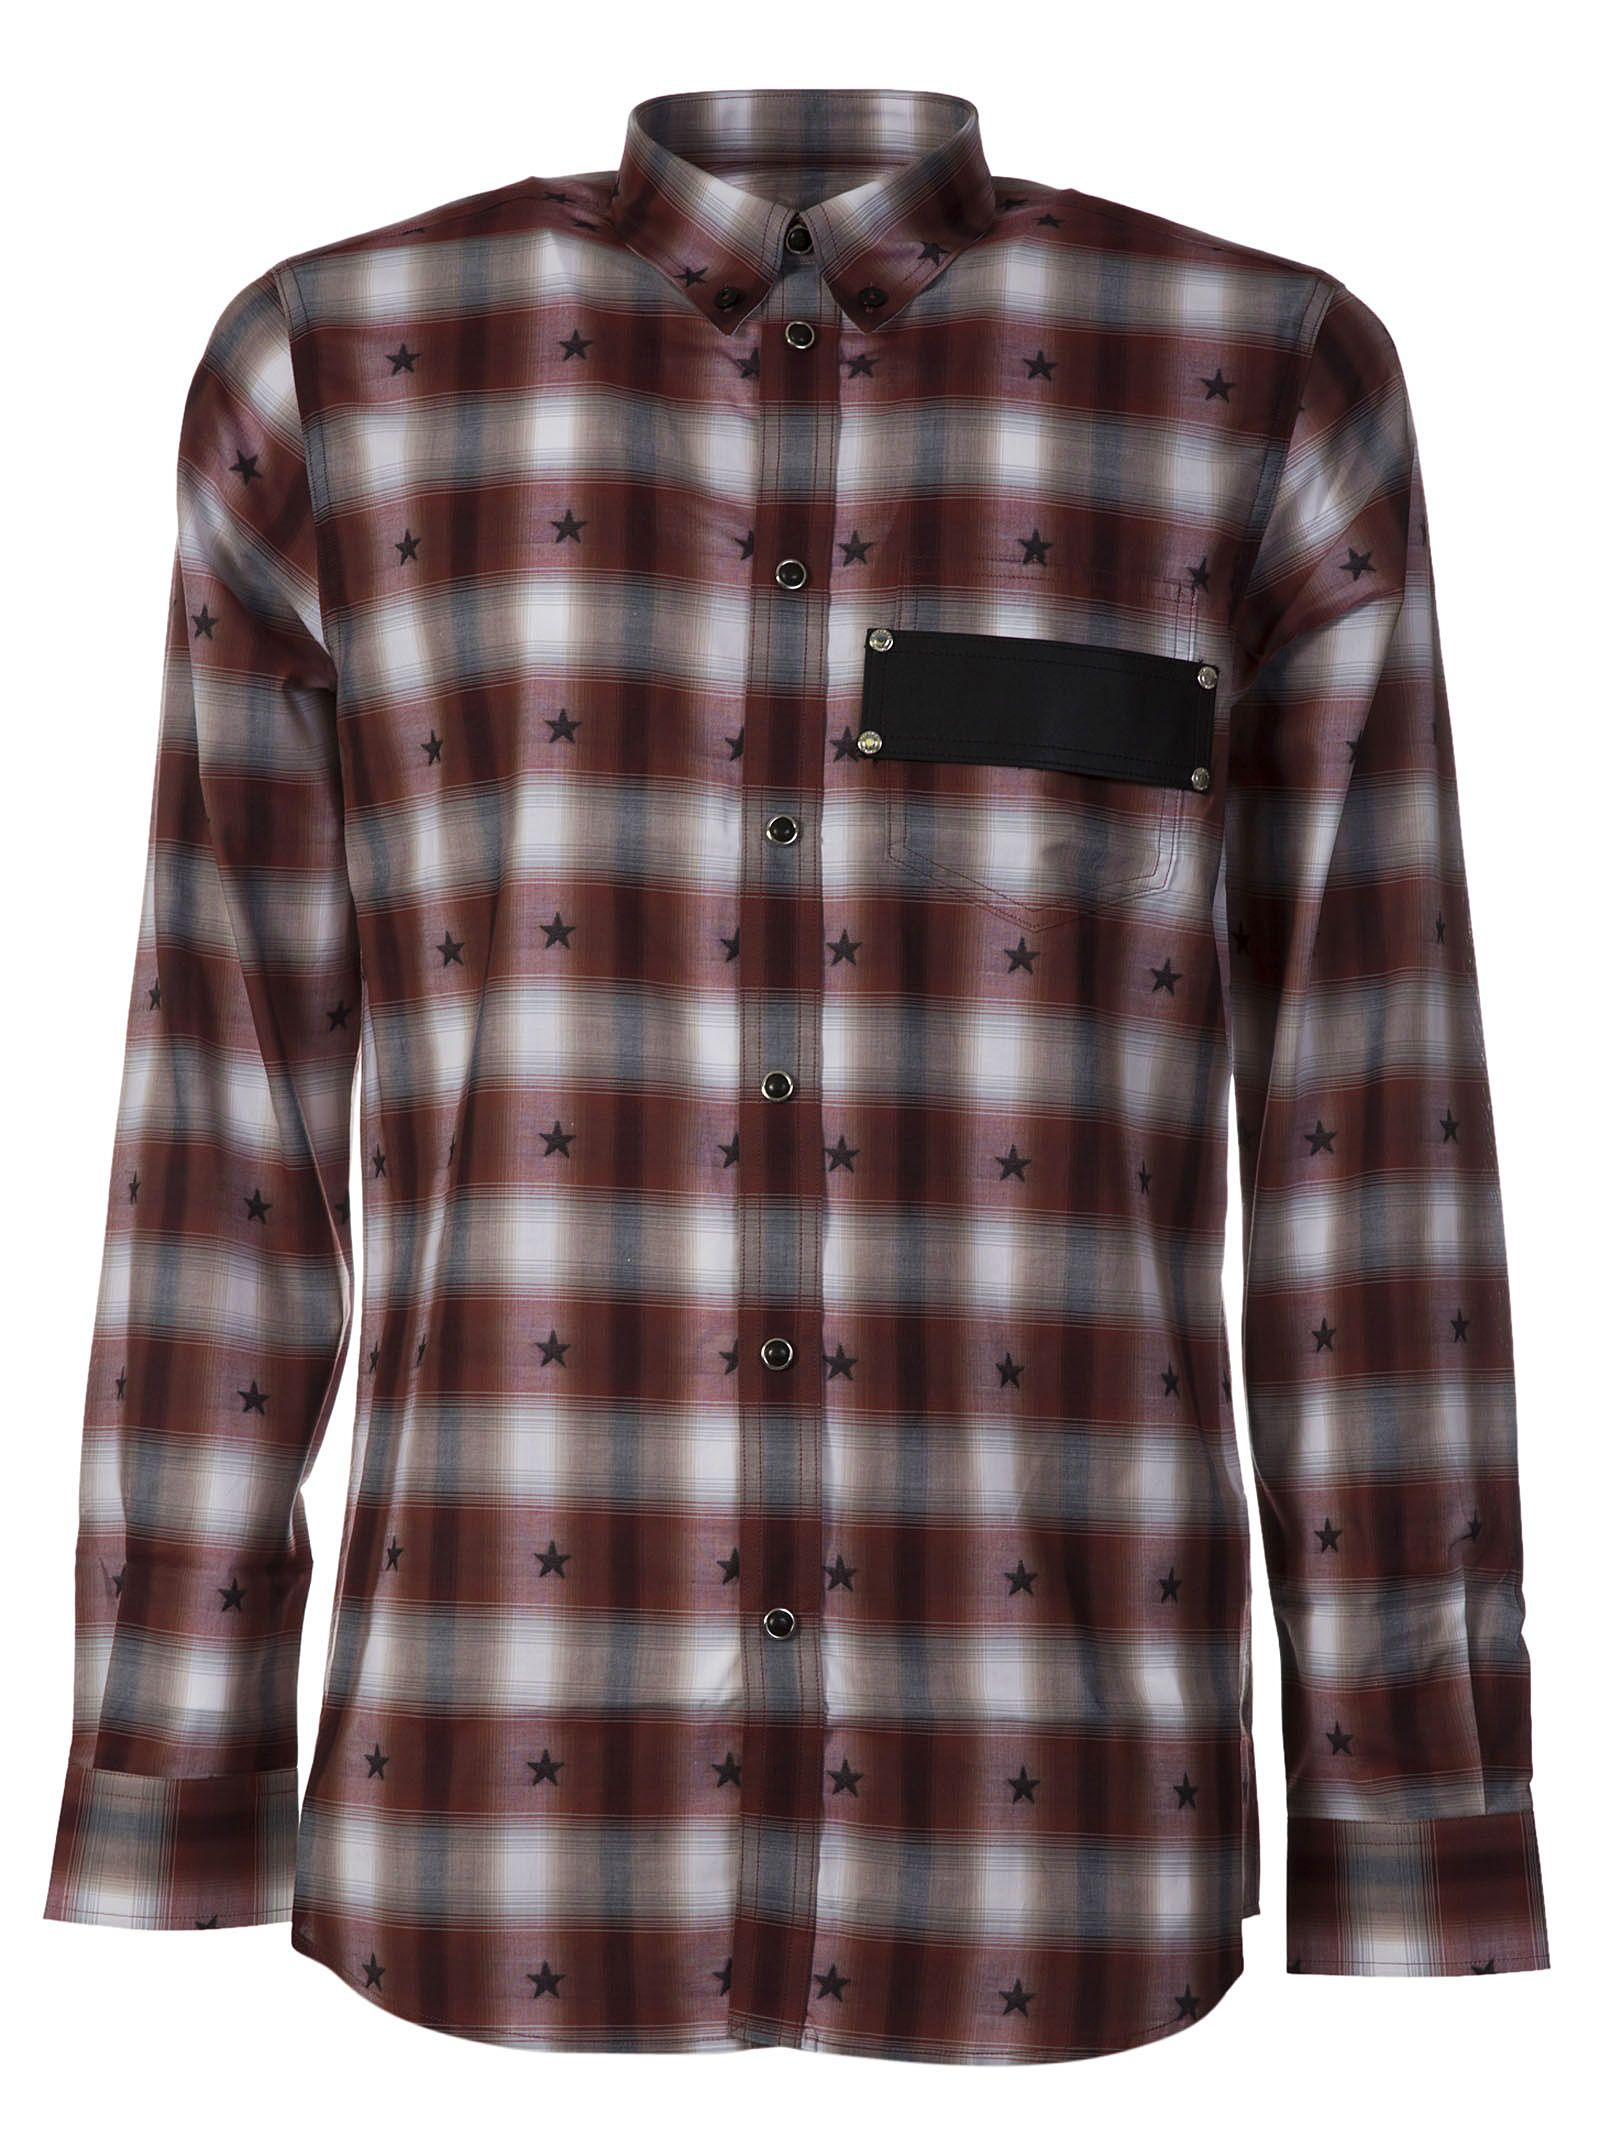 Givenchy Checked Star Print Shirt